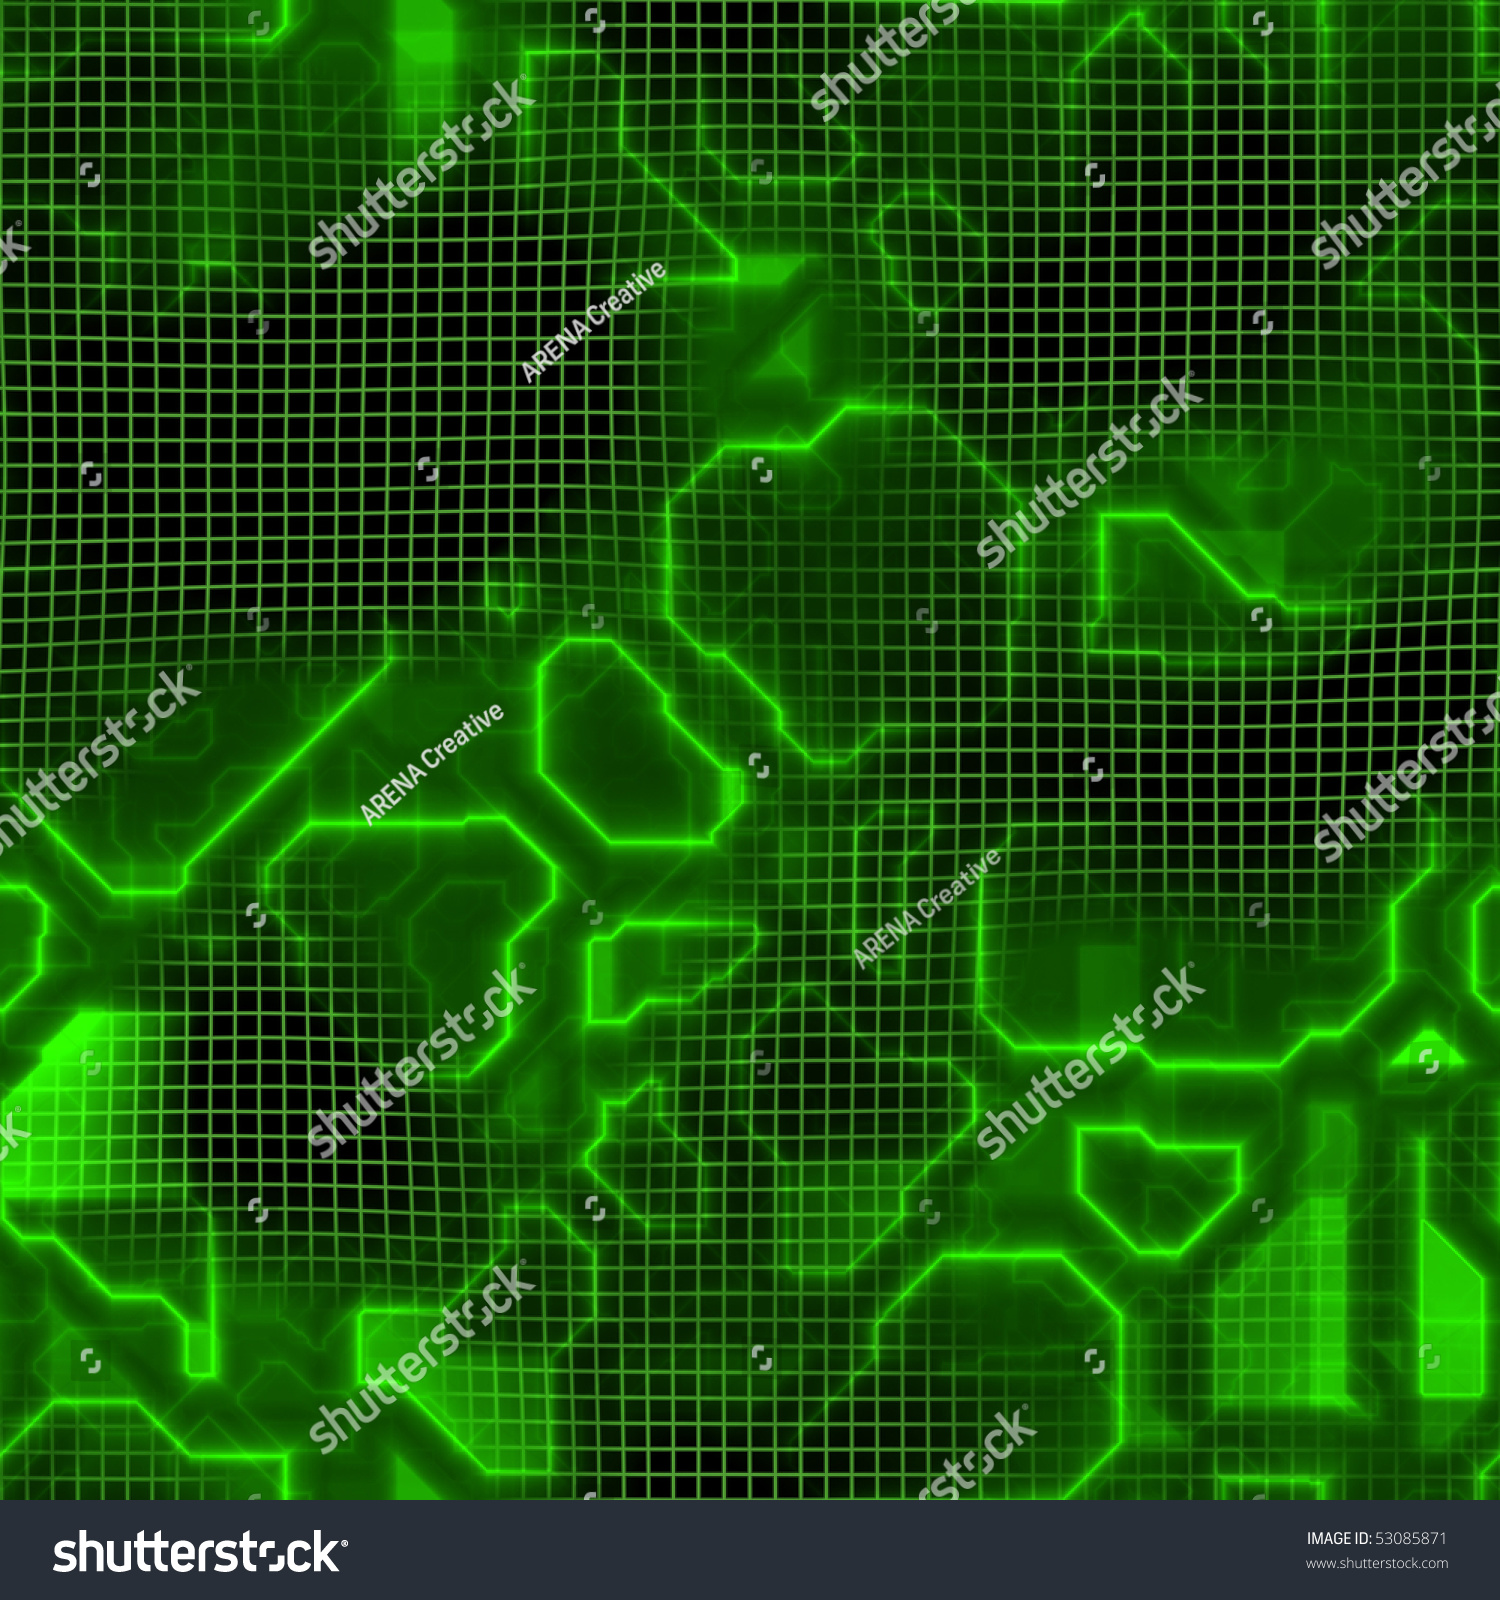 green computer circuit board circuitry texture that tiles